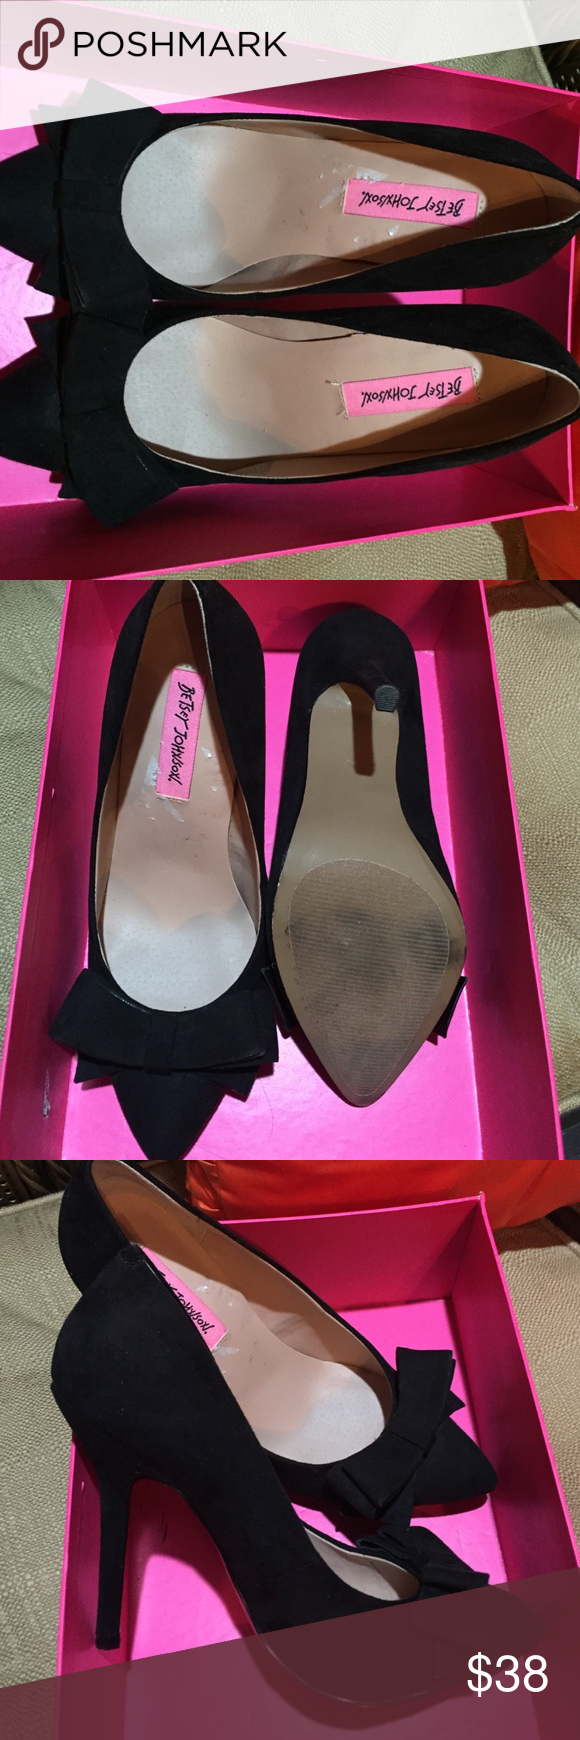 """Betsy Johnson stilettos LOVE some Betsy Johnson fashion!!!  Super Adorable stilettos in suede midnight black with a sleek bow accent on toe. (Only worn once) heel 3"""". Betsey Johnson Shoes Heels"""